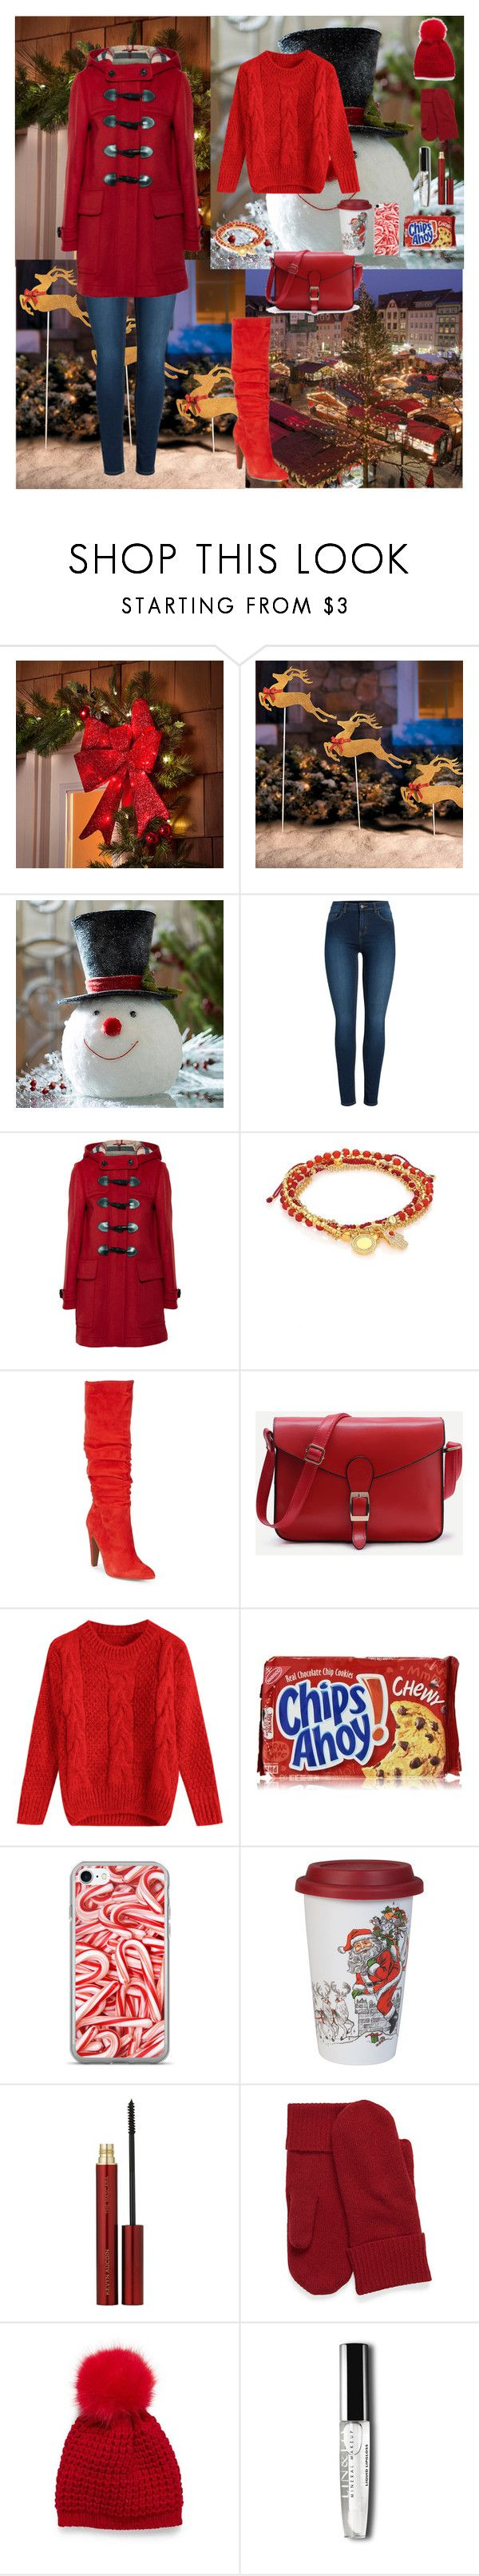 """Christmas Fair❄️☕️"" by oksana-kolesnyk ❤ liked on Polyvore featuring Improvements, Pieces, Burberry, Astley Clarke, Steve Madden, Fitz & Floyd and Kevyn Aucoin"